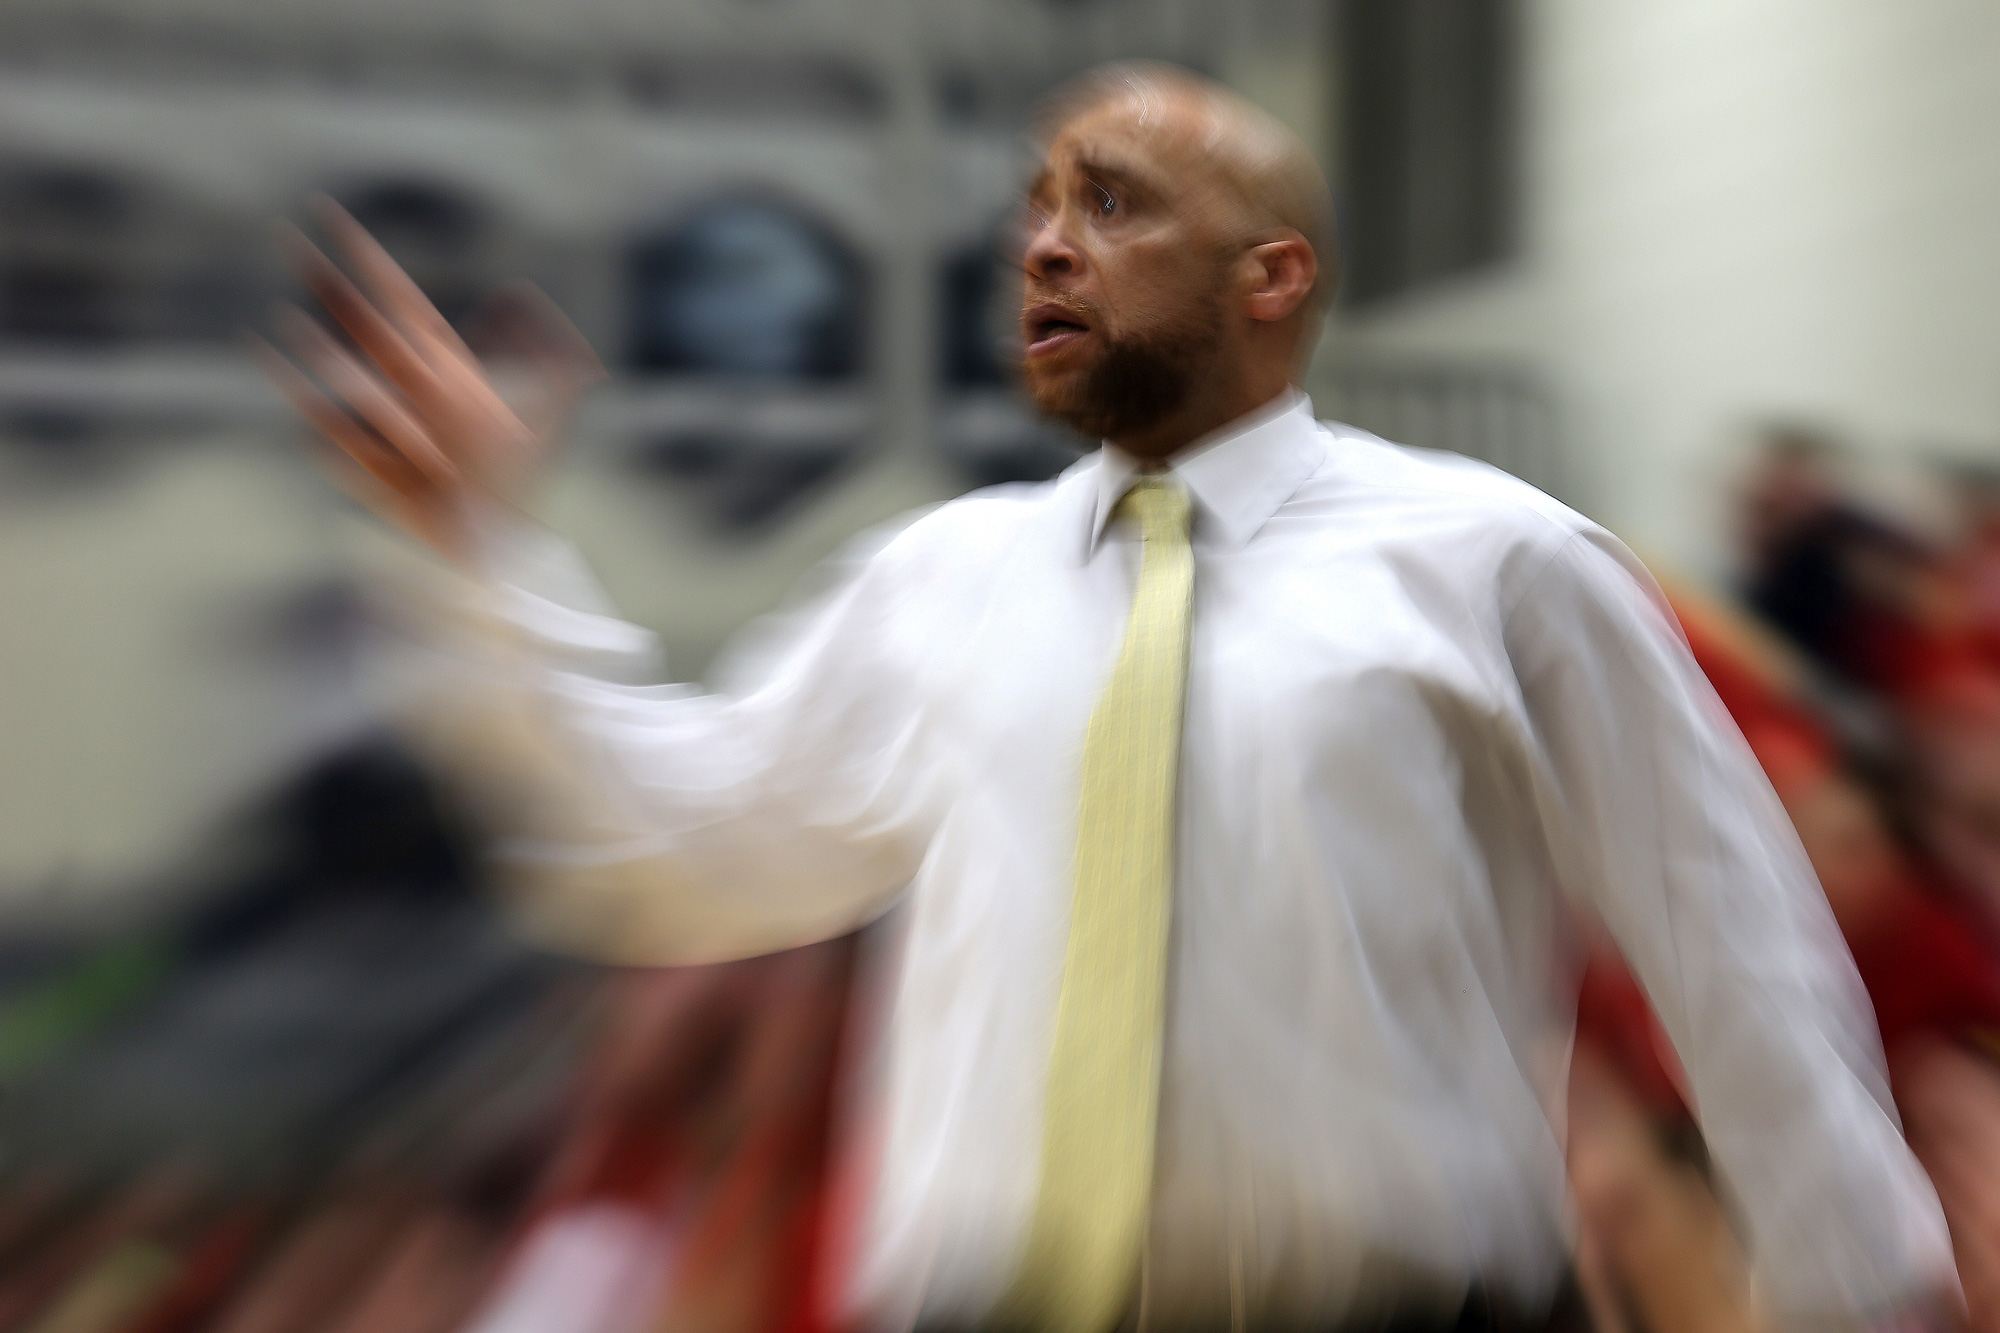 Head coach Anthony Bell of Mount Hebron looks on against Marriotts Ridge during a basketball game at Marriotts Ridge High School in Marriottsville, MD on Wednesday, February 17, 2016.